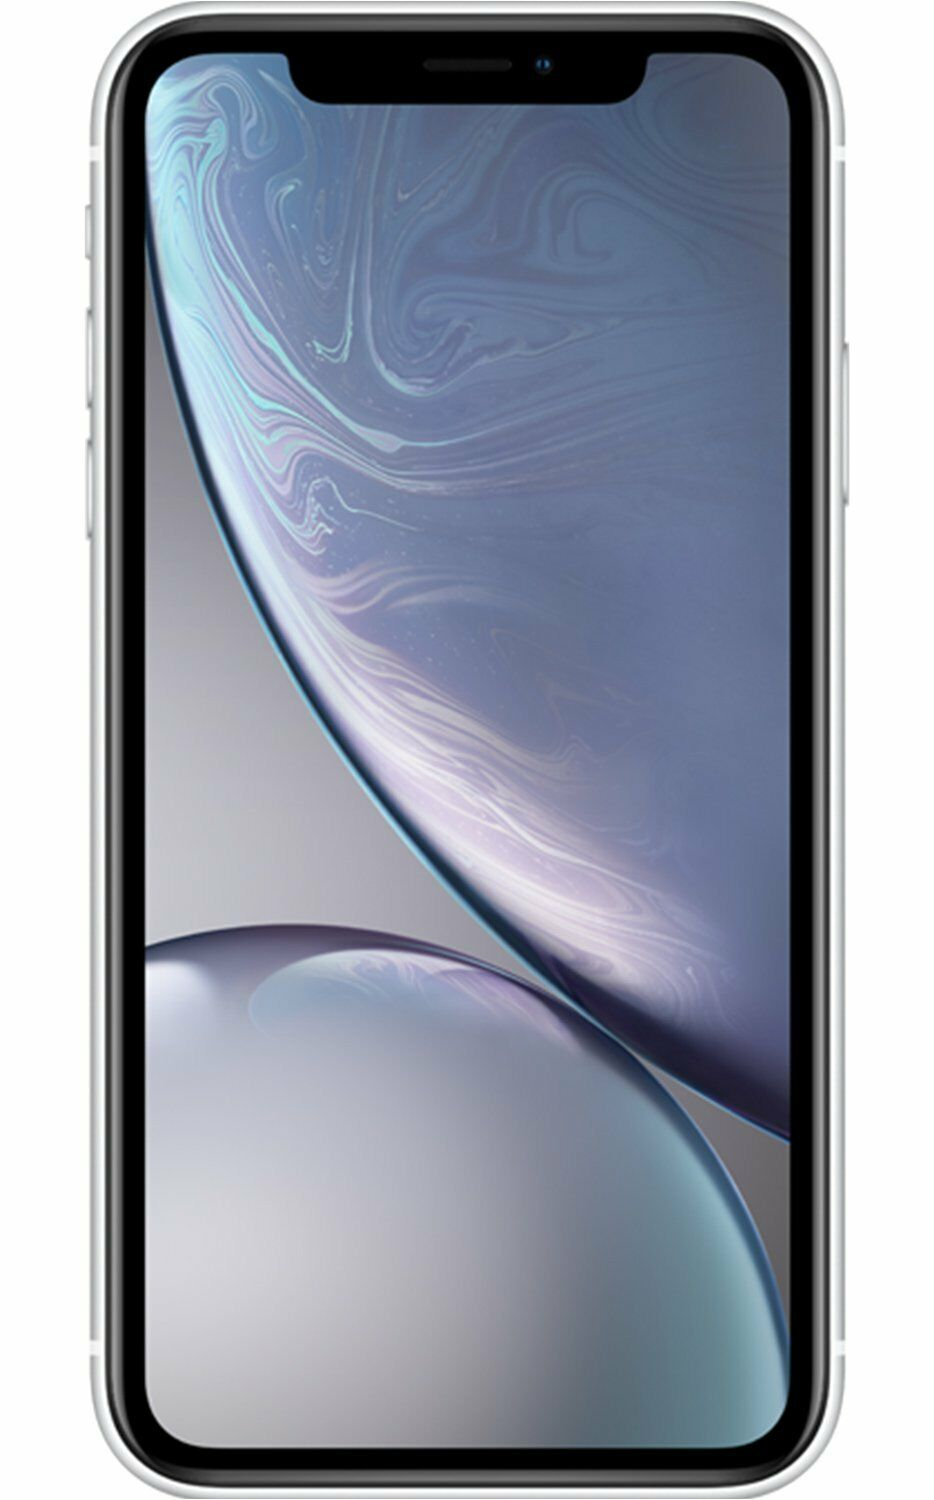 Apple-iPhone-XR-64GB-Factory-Unlocked-Smartphone-4G-LTE-iOS-Smartphone thumbnail 14